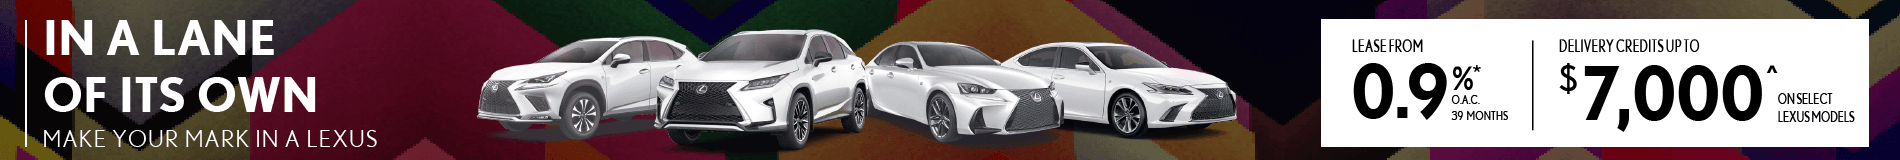 Delivery Credits up to $7000 on select Lexus Models.